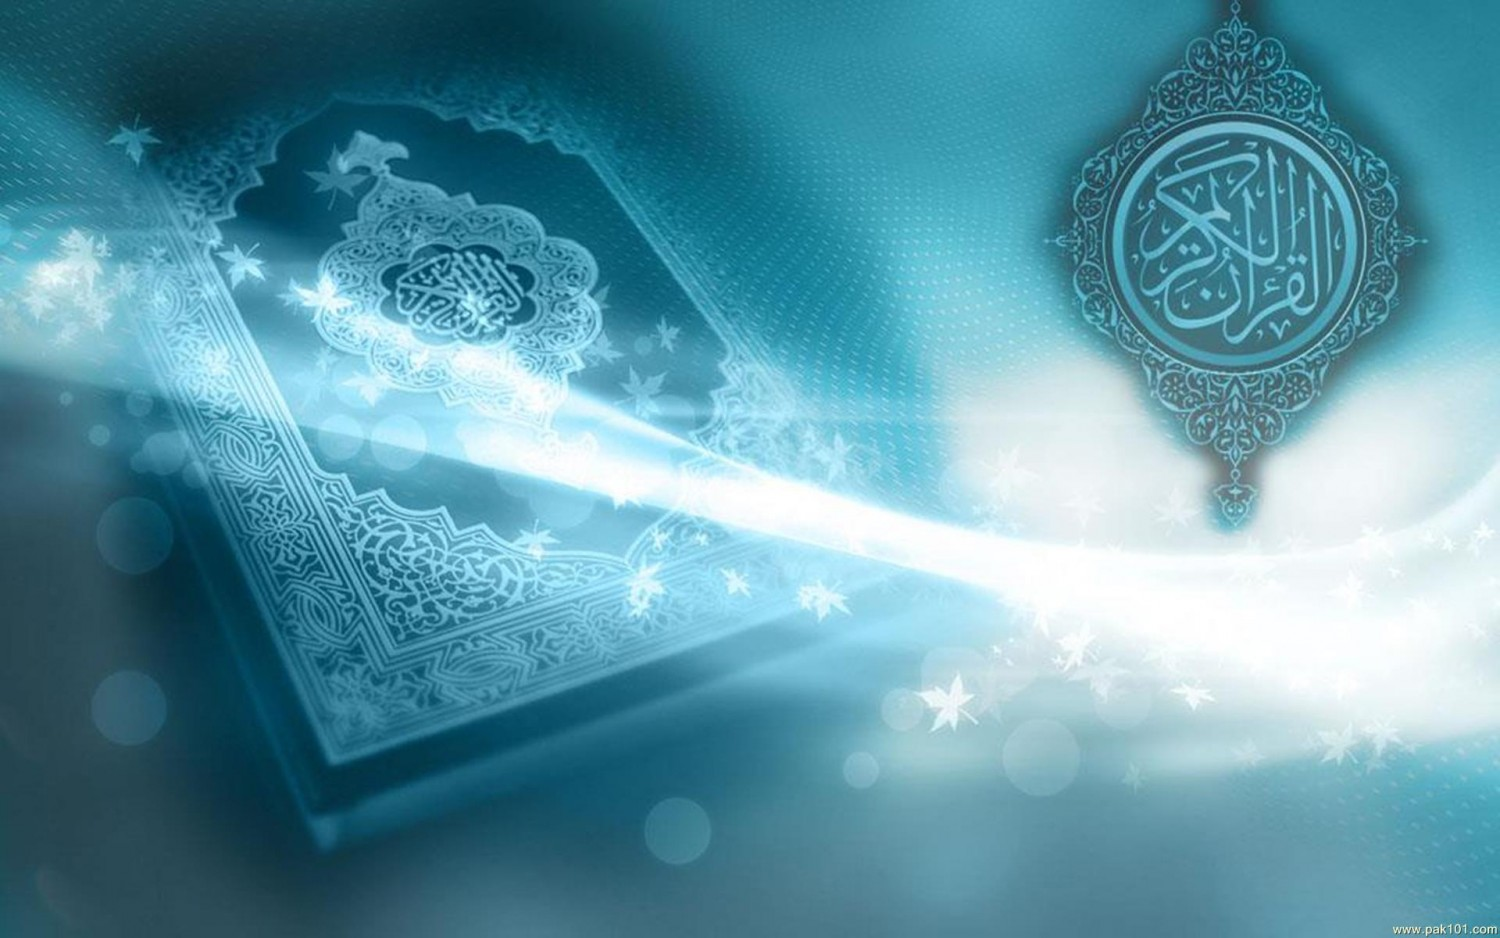 Quran-HD-Wallpaper-Free-Download-11